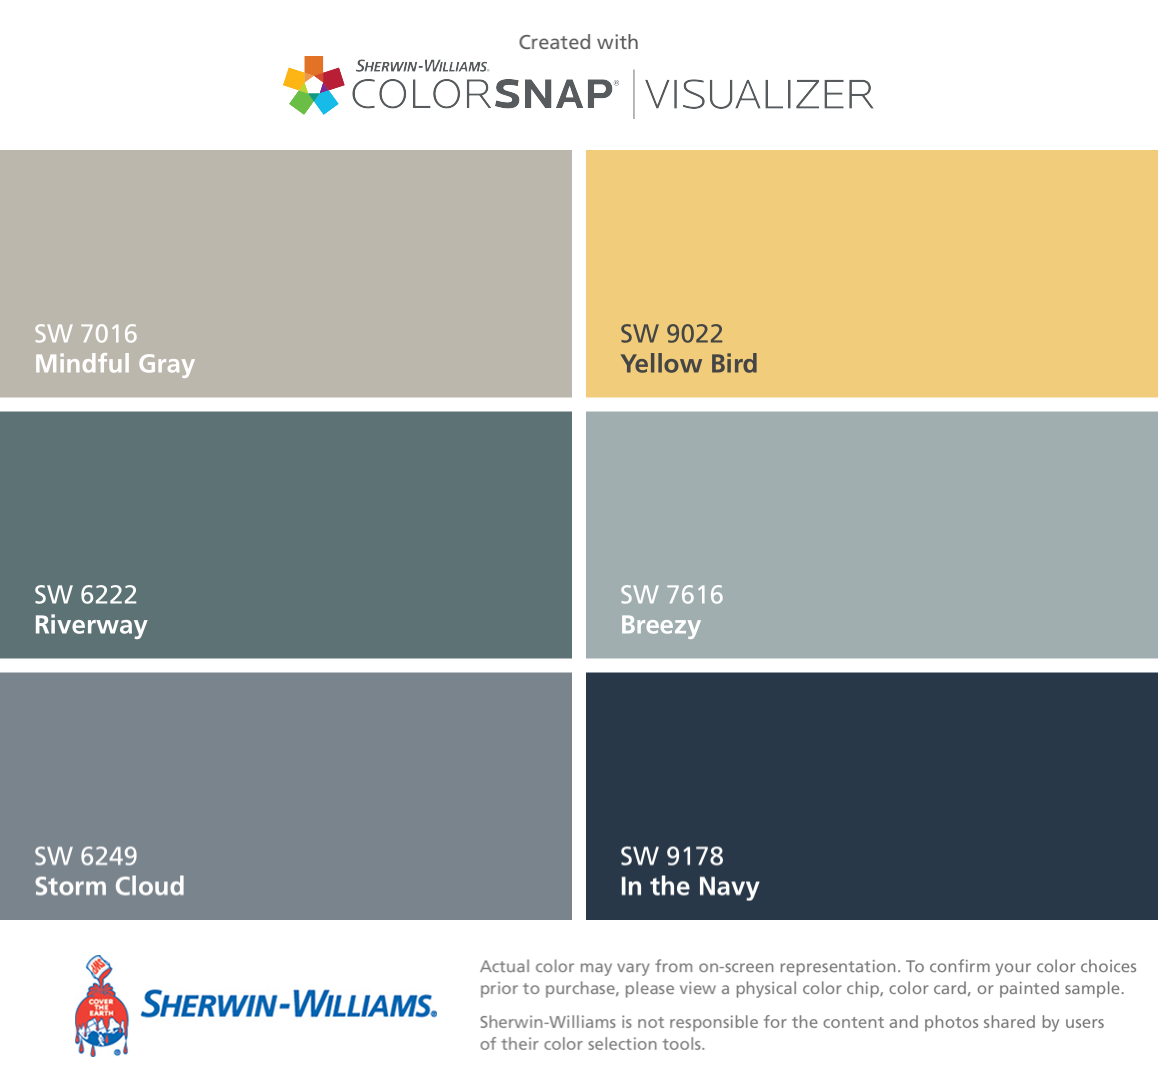 Sherwin williams paint colors sherwin williams 6249 storm cloud - I Found These Colors With Colorsnap Visualizer For Iphone By Sherwin Williams Mindful Gray Sw Riverway Sw Storm Cloud Sw Yellow Bird Sw Breezy Sw In